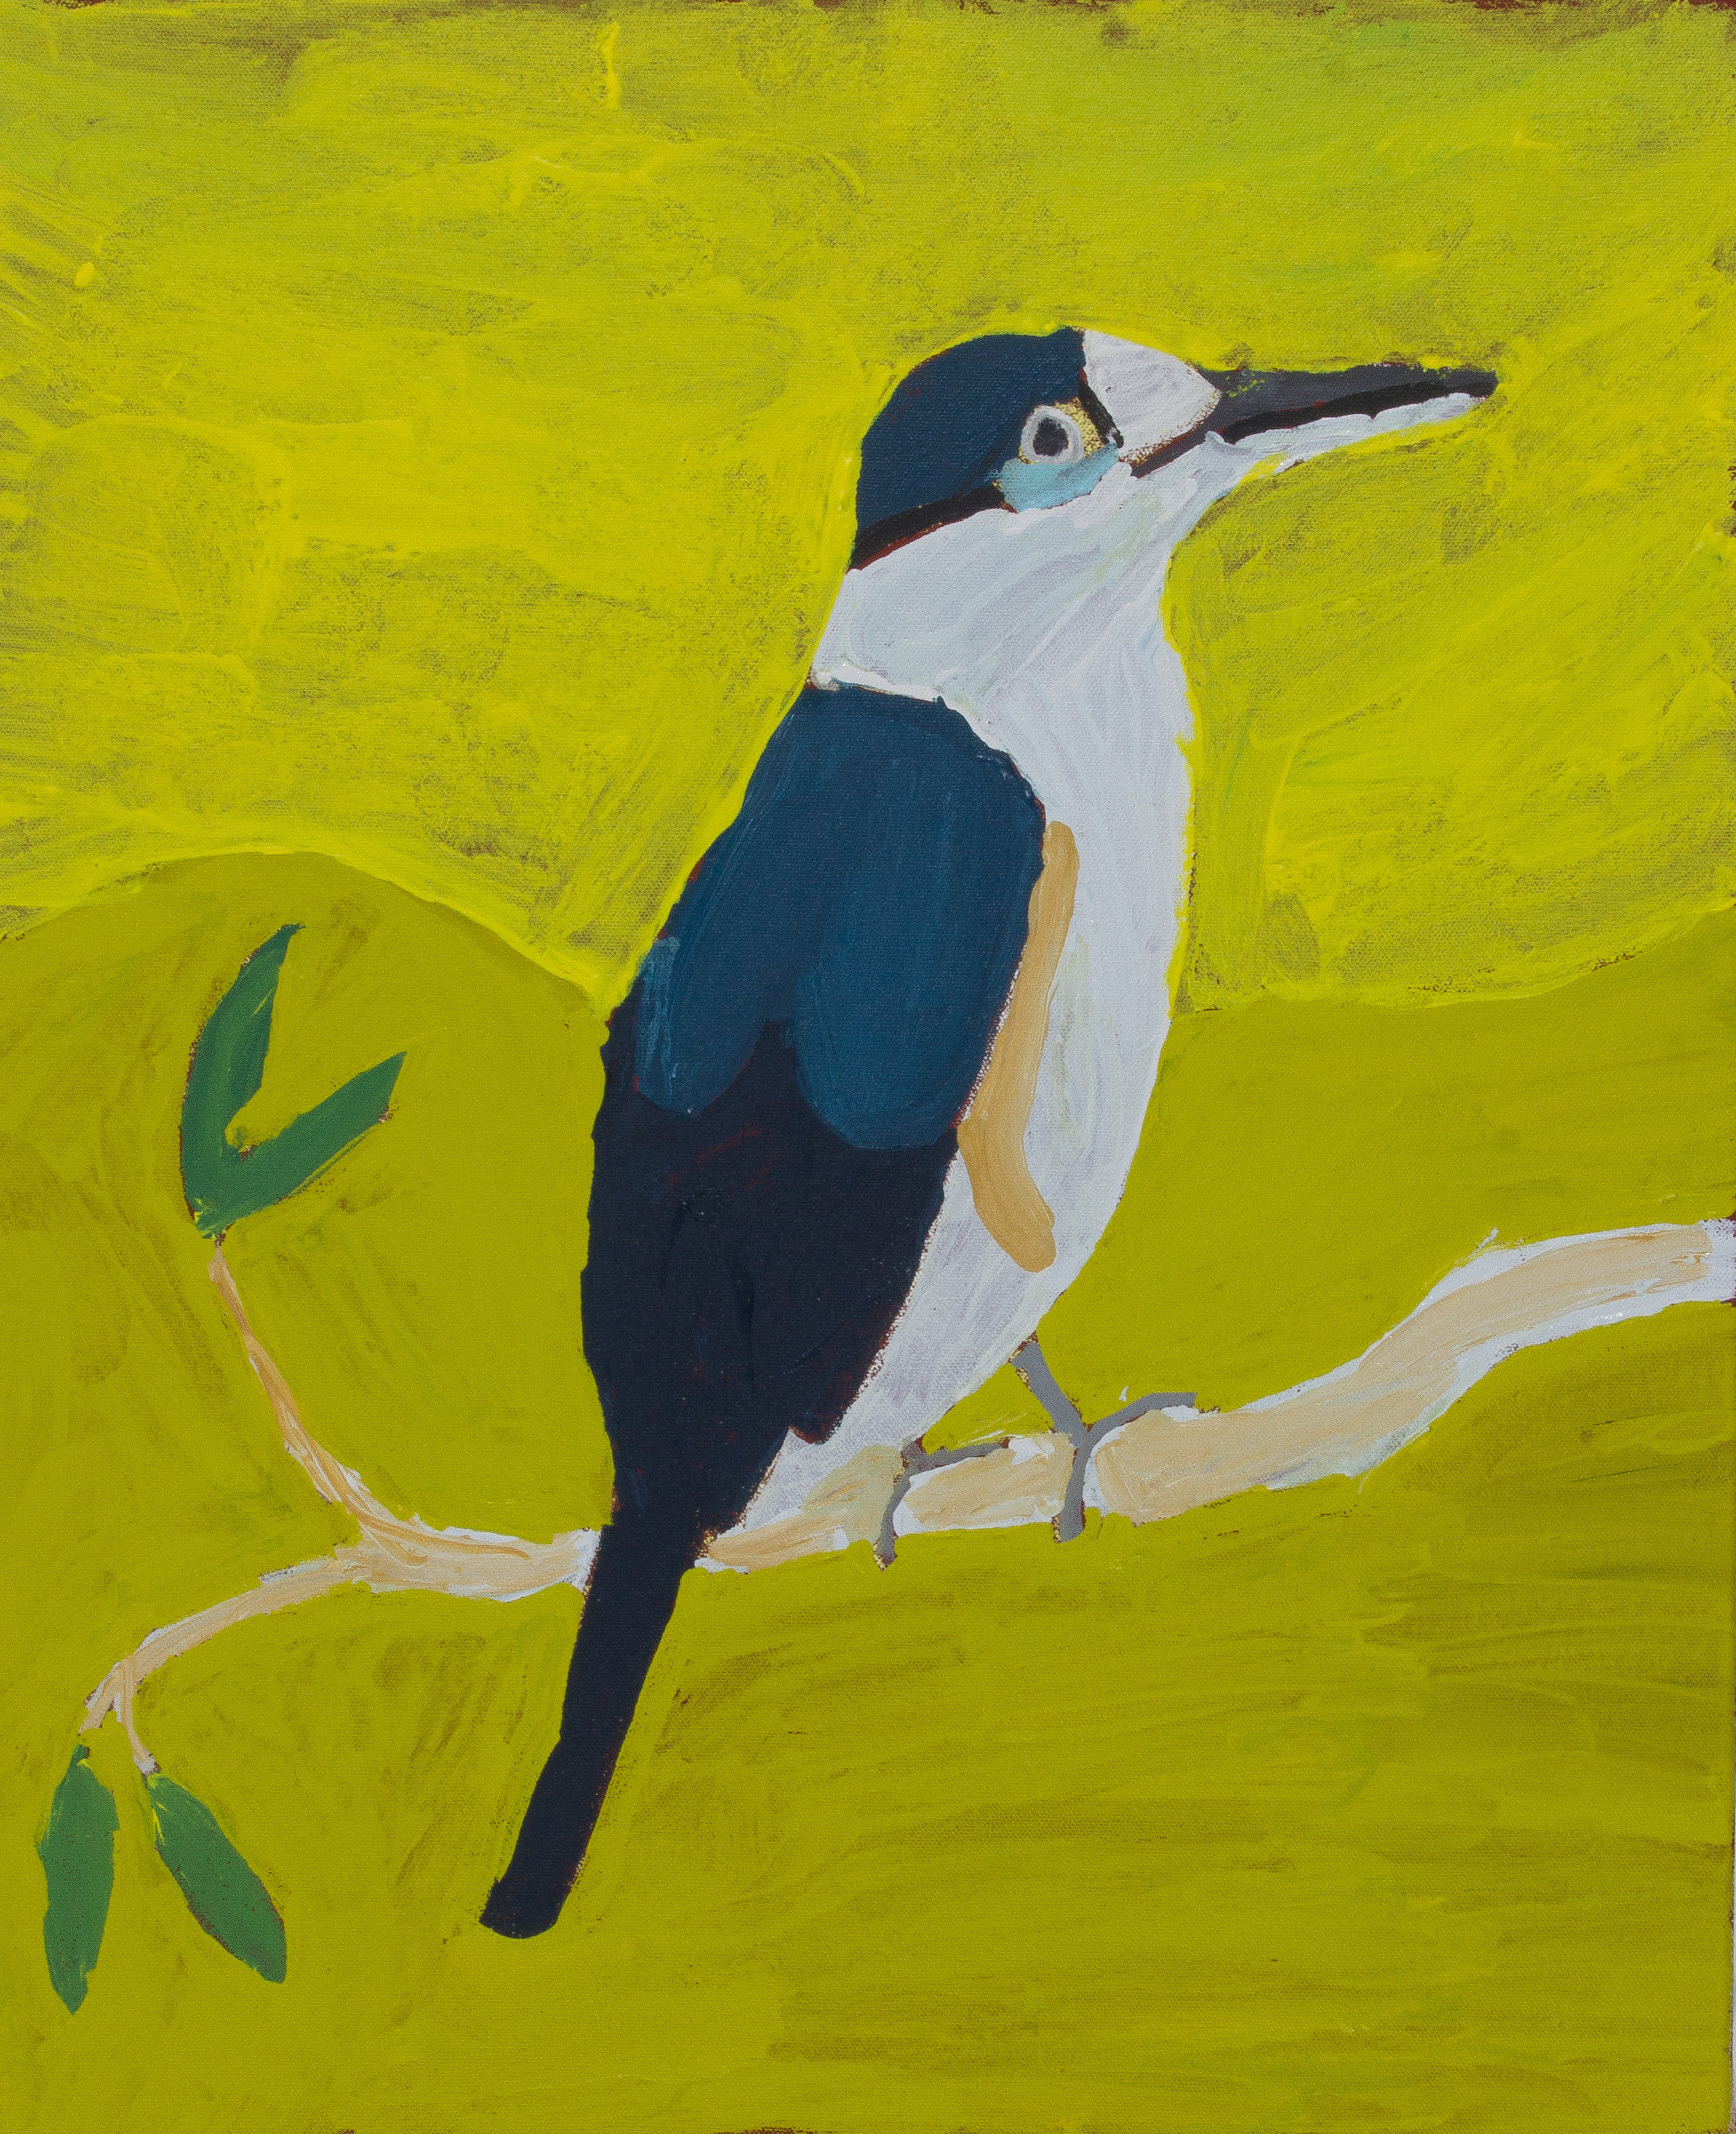 "Nyangulya Katie Nalgood  Kookaburra  22 x 18"" (56 x 45.5 cm) acrylic on linen Spinifex Hills Artists Catalog #18-469  EMAIL INQUIRY"